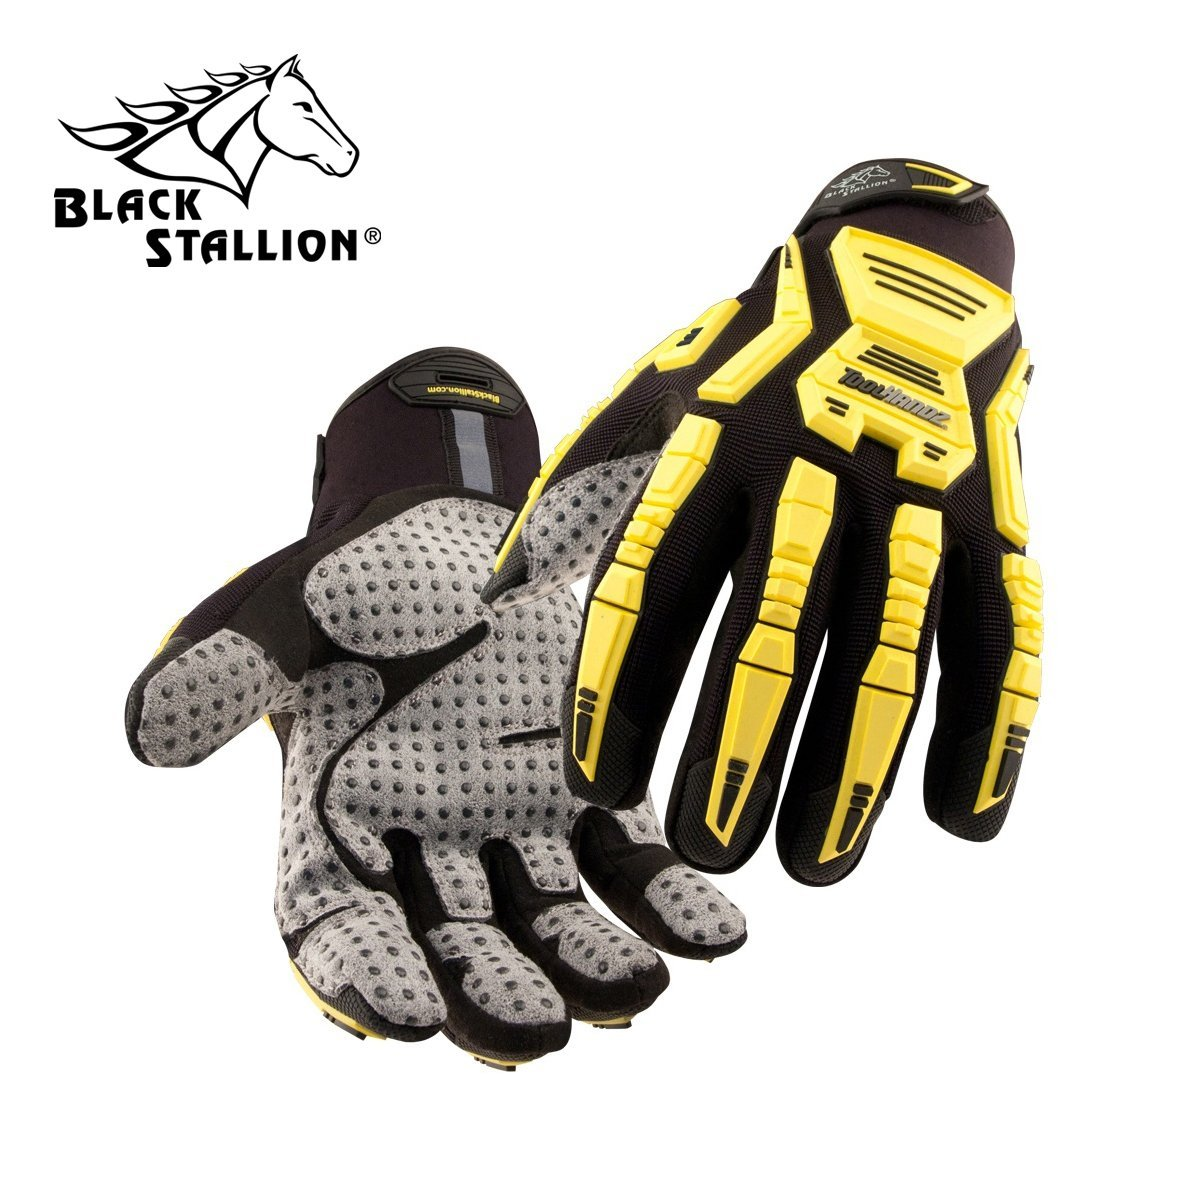 REVCO BLACK STALLION - GX105 TOOLHANDZ SYNTHETIC LEATHER MECHANIC'S GLOVES - SIZE: MEDIUM - CASE OF: 60 PAIR